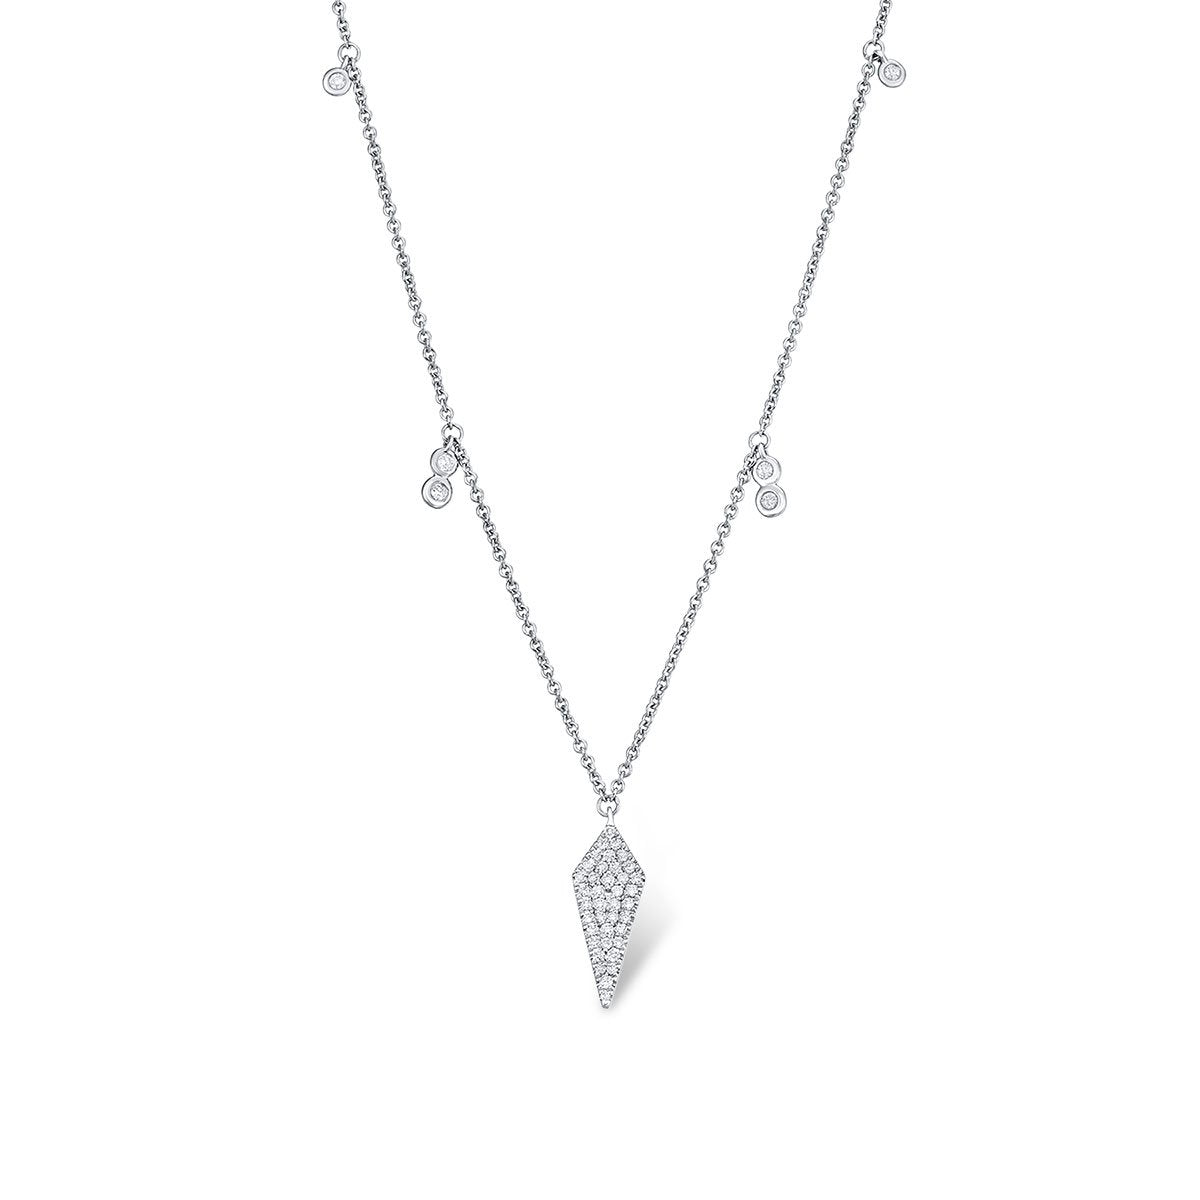 Dainty Dagger Necklace - Serena Williams Jewelry